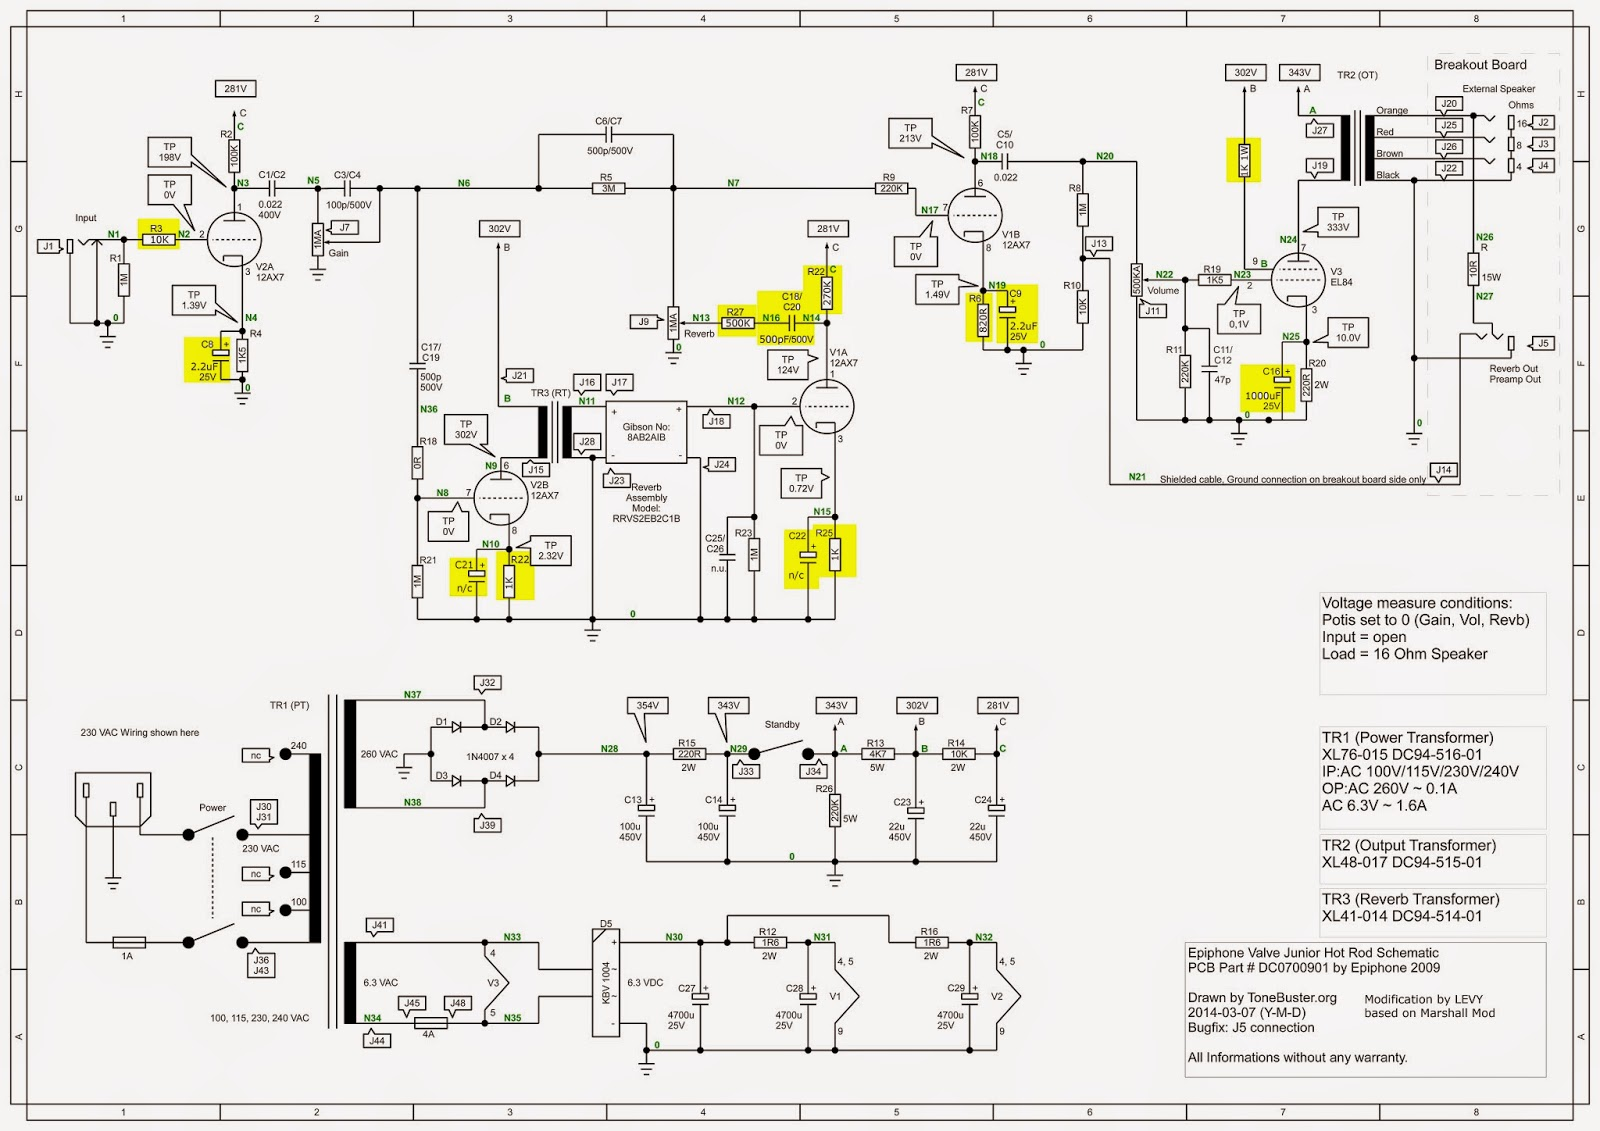 gas valve wiring schematic levy sound design: epiphone valve jr hot-rod modification